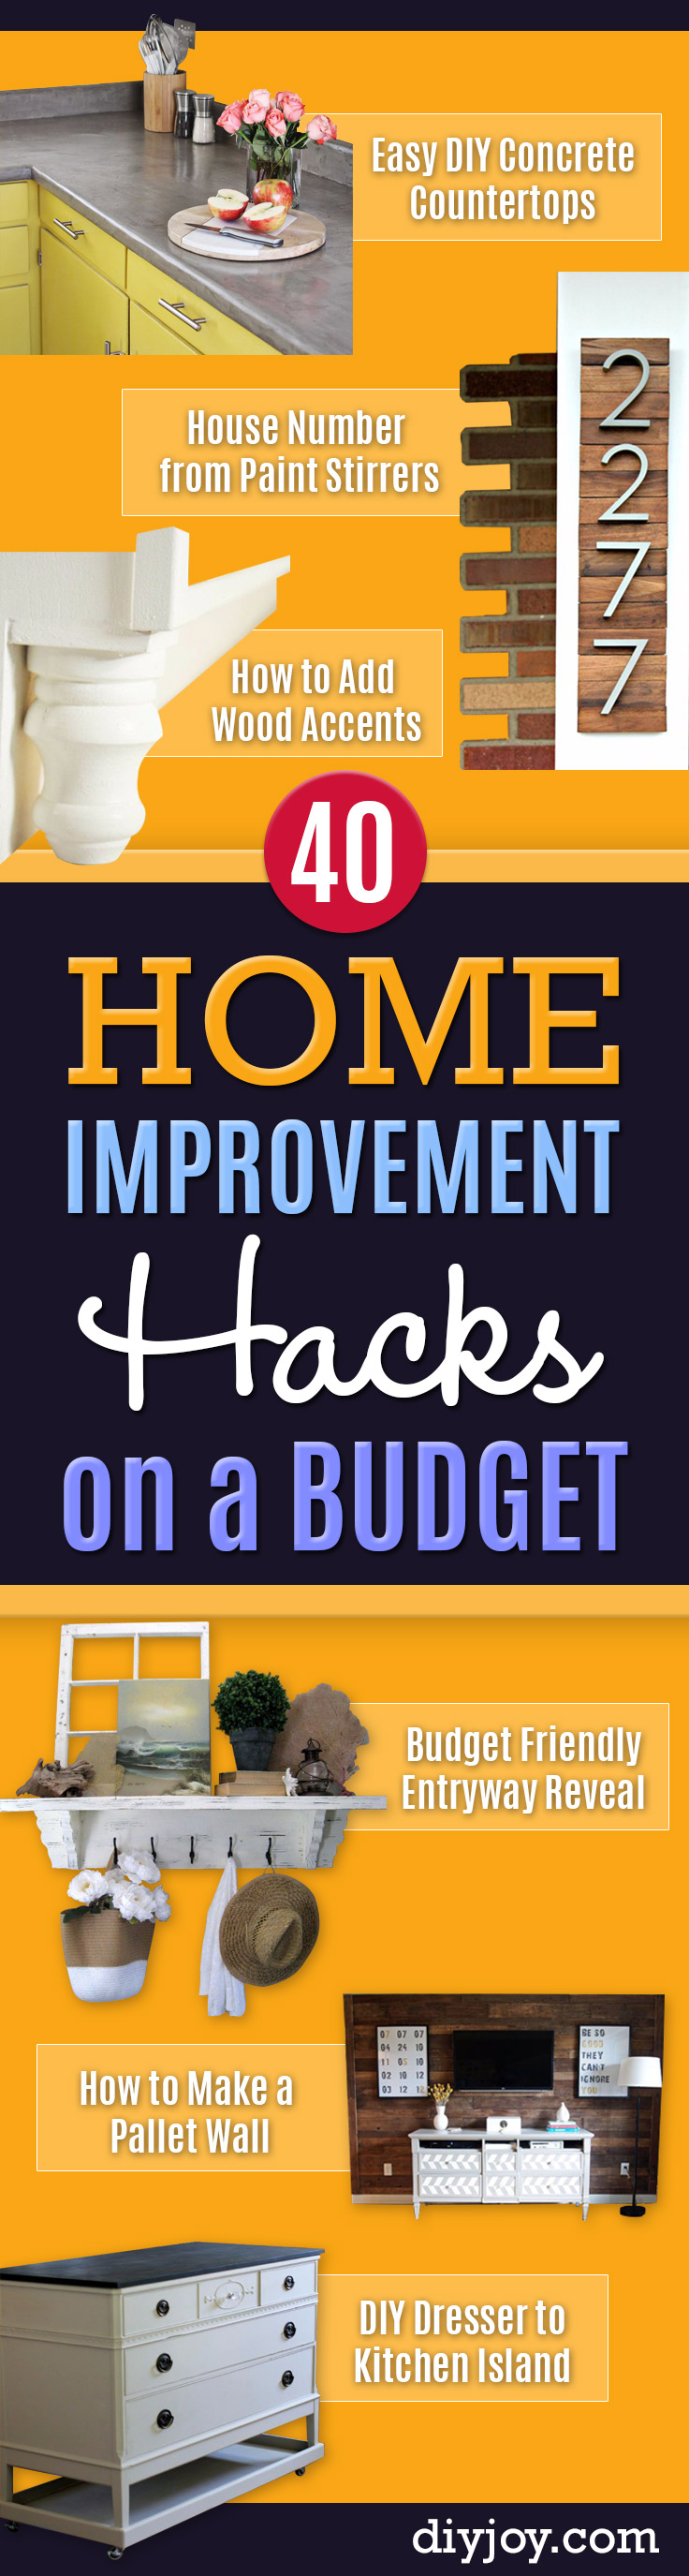 40 home improvement ideas for those on a serious budget Home improvement ideas